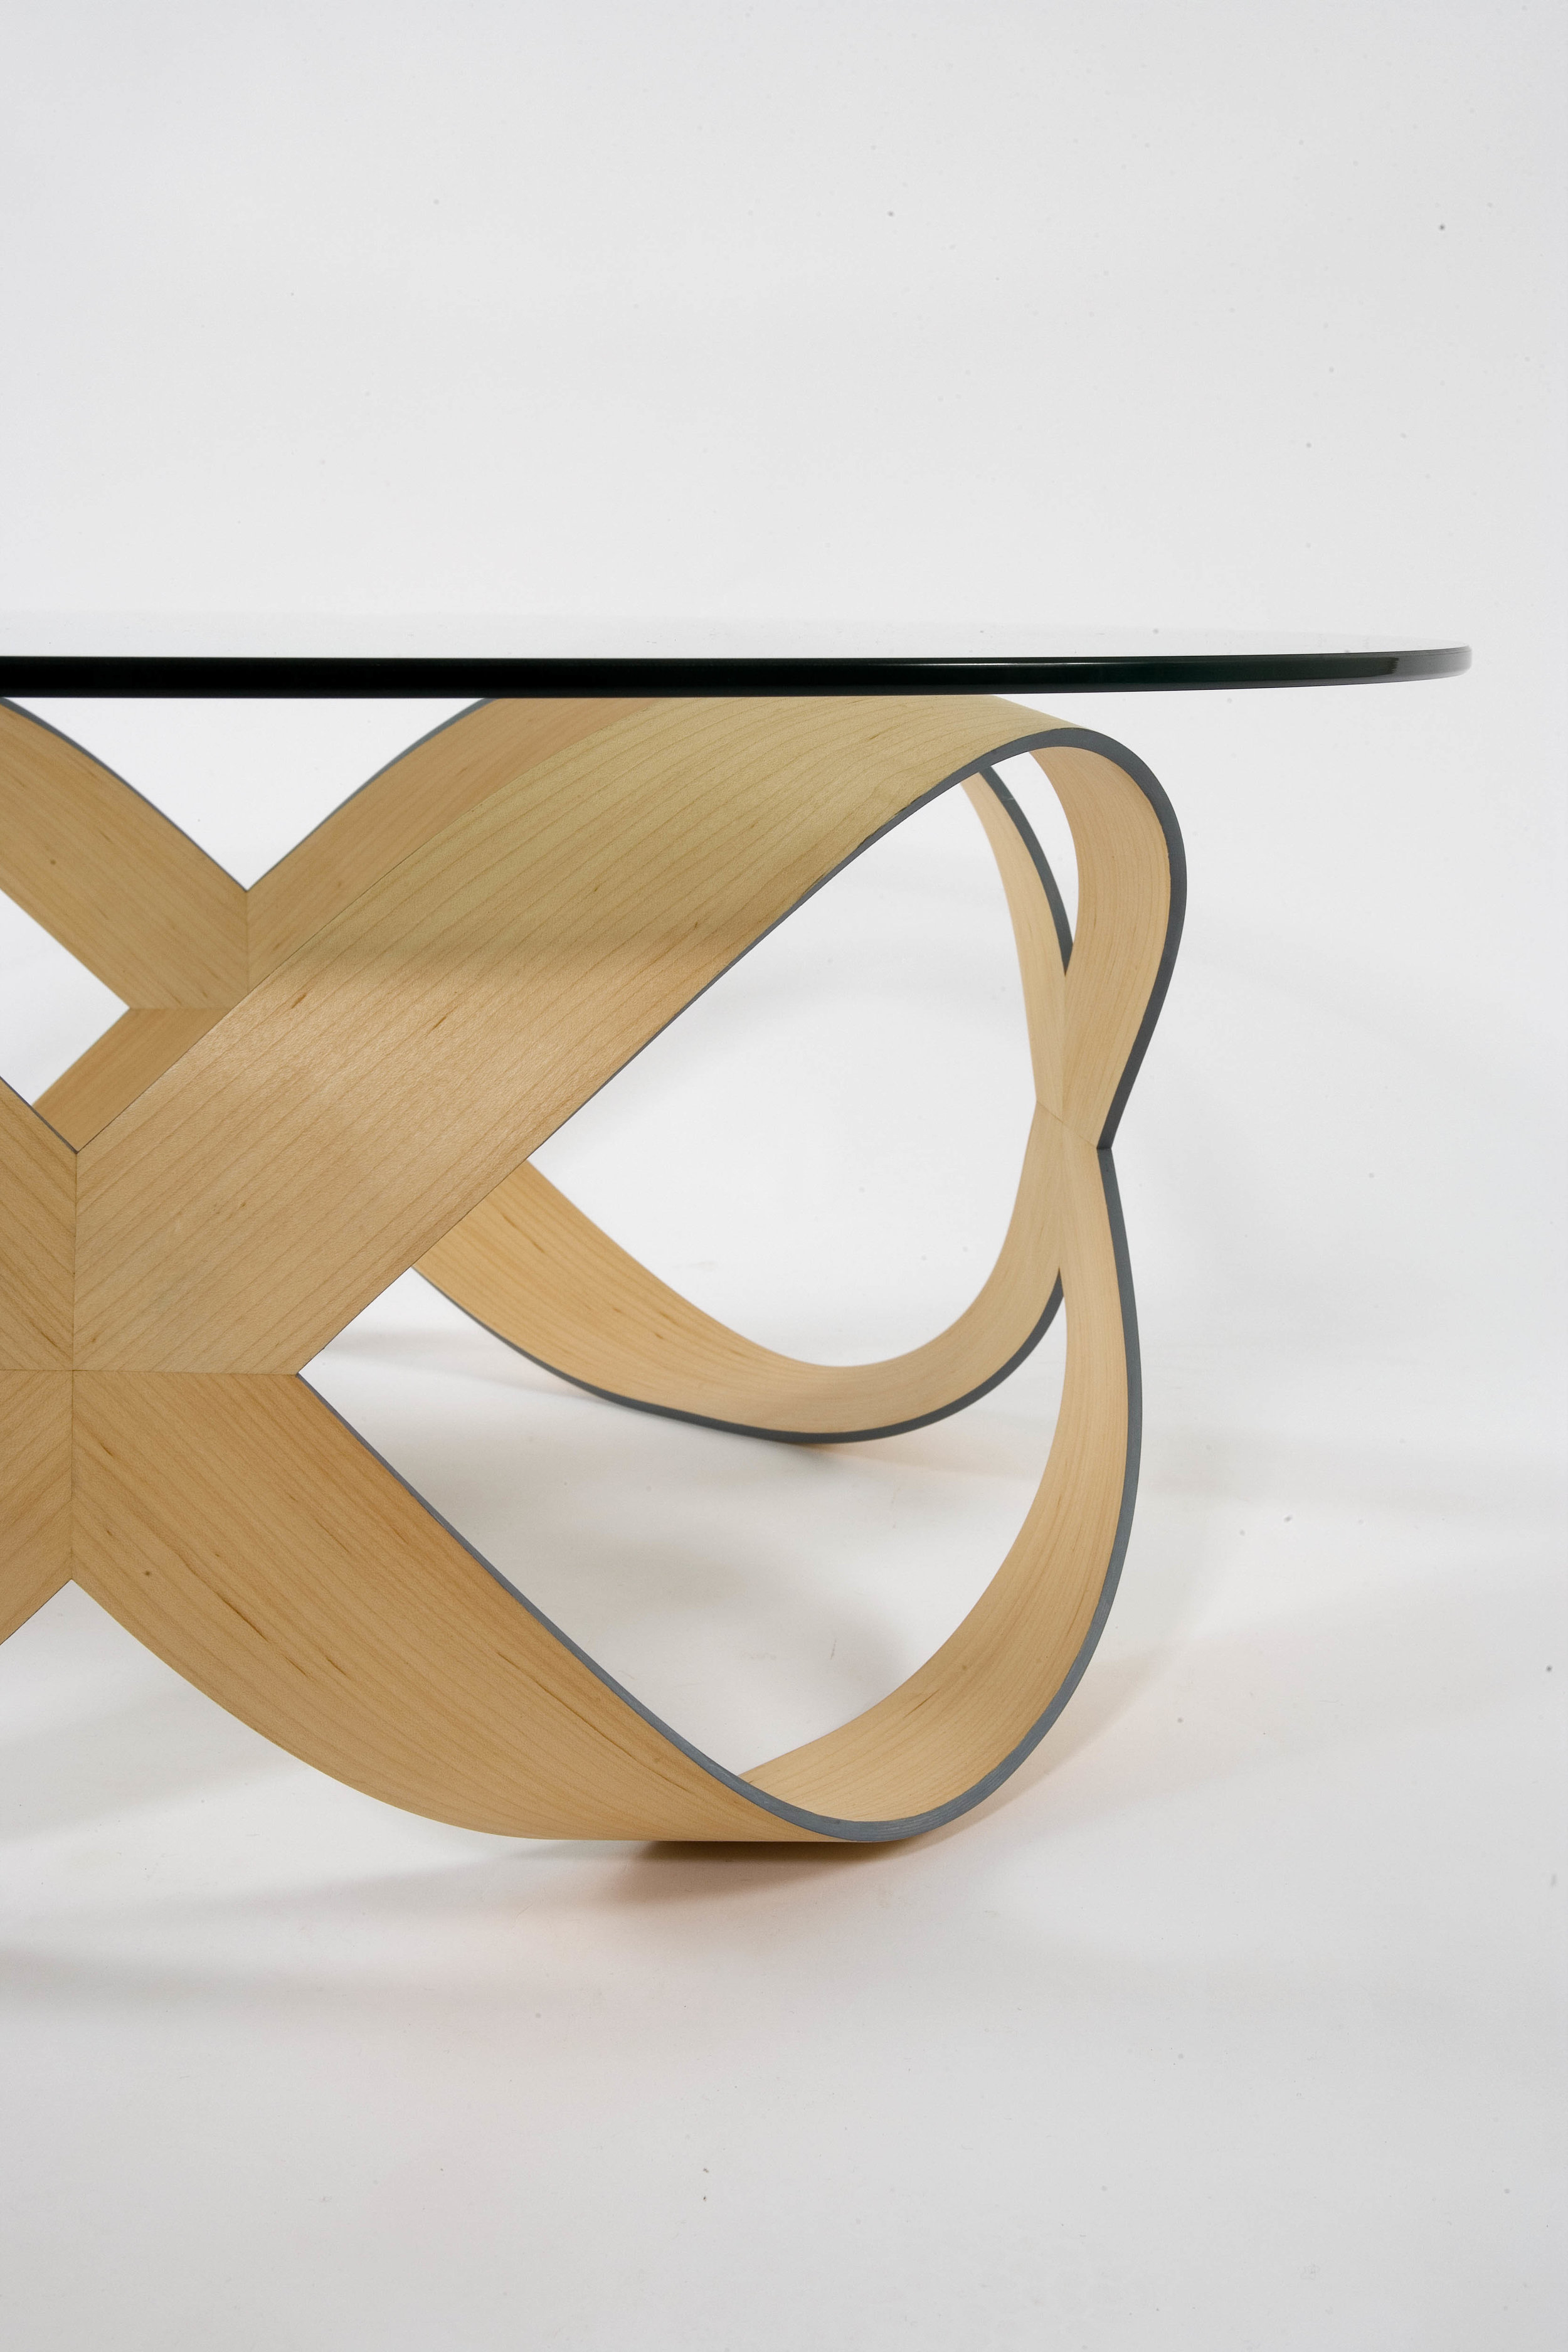 'Infinity squared' coffee table - 'Infinity Squared' is a development of the multi-award winning 'Infinity + 1' table. It offers the same intrigue and beauty through its elegant, flowing lines but is smaller in size and has a character of its own.Designed to be a piece of functional sculpture, the table is contemporary in style but capable of sitting in many environments thanks to its relaxed, harmonious form. The aesthetic simplicity of 'Infinity Squared' masks its complex construction and the deceptive strength of such a slight structure.Available in American Black Walnut, Maple, Sweet Chestnut or Cherry as standard, other timbers, including coloured veneers, are possible but may incur a small surcharge. Edge colours can be matched to specific colours or existing décor.Dimensions: Height 32.5cm, diameter 87.5cmPrice: £2400